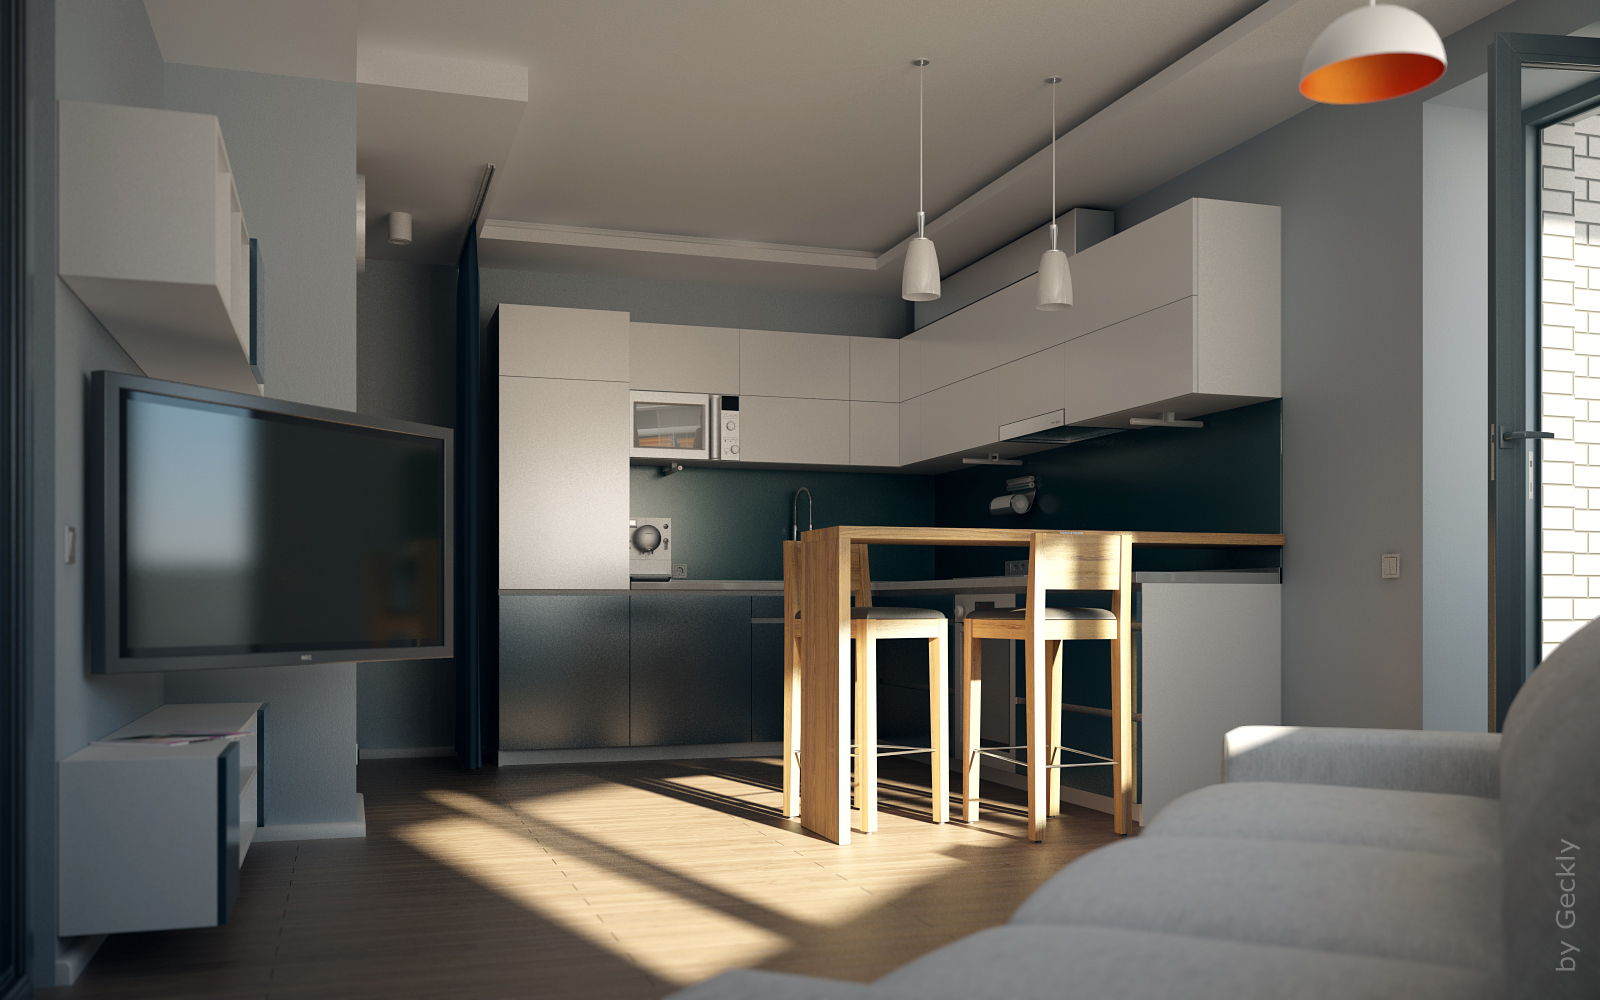 Small flat 001 by geckly on deviantart for Small flat interior